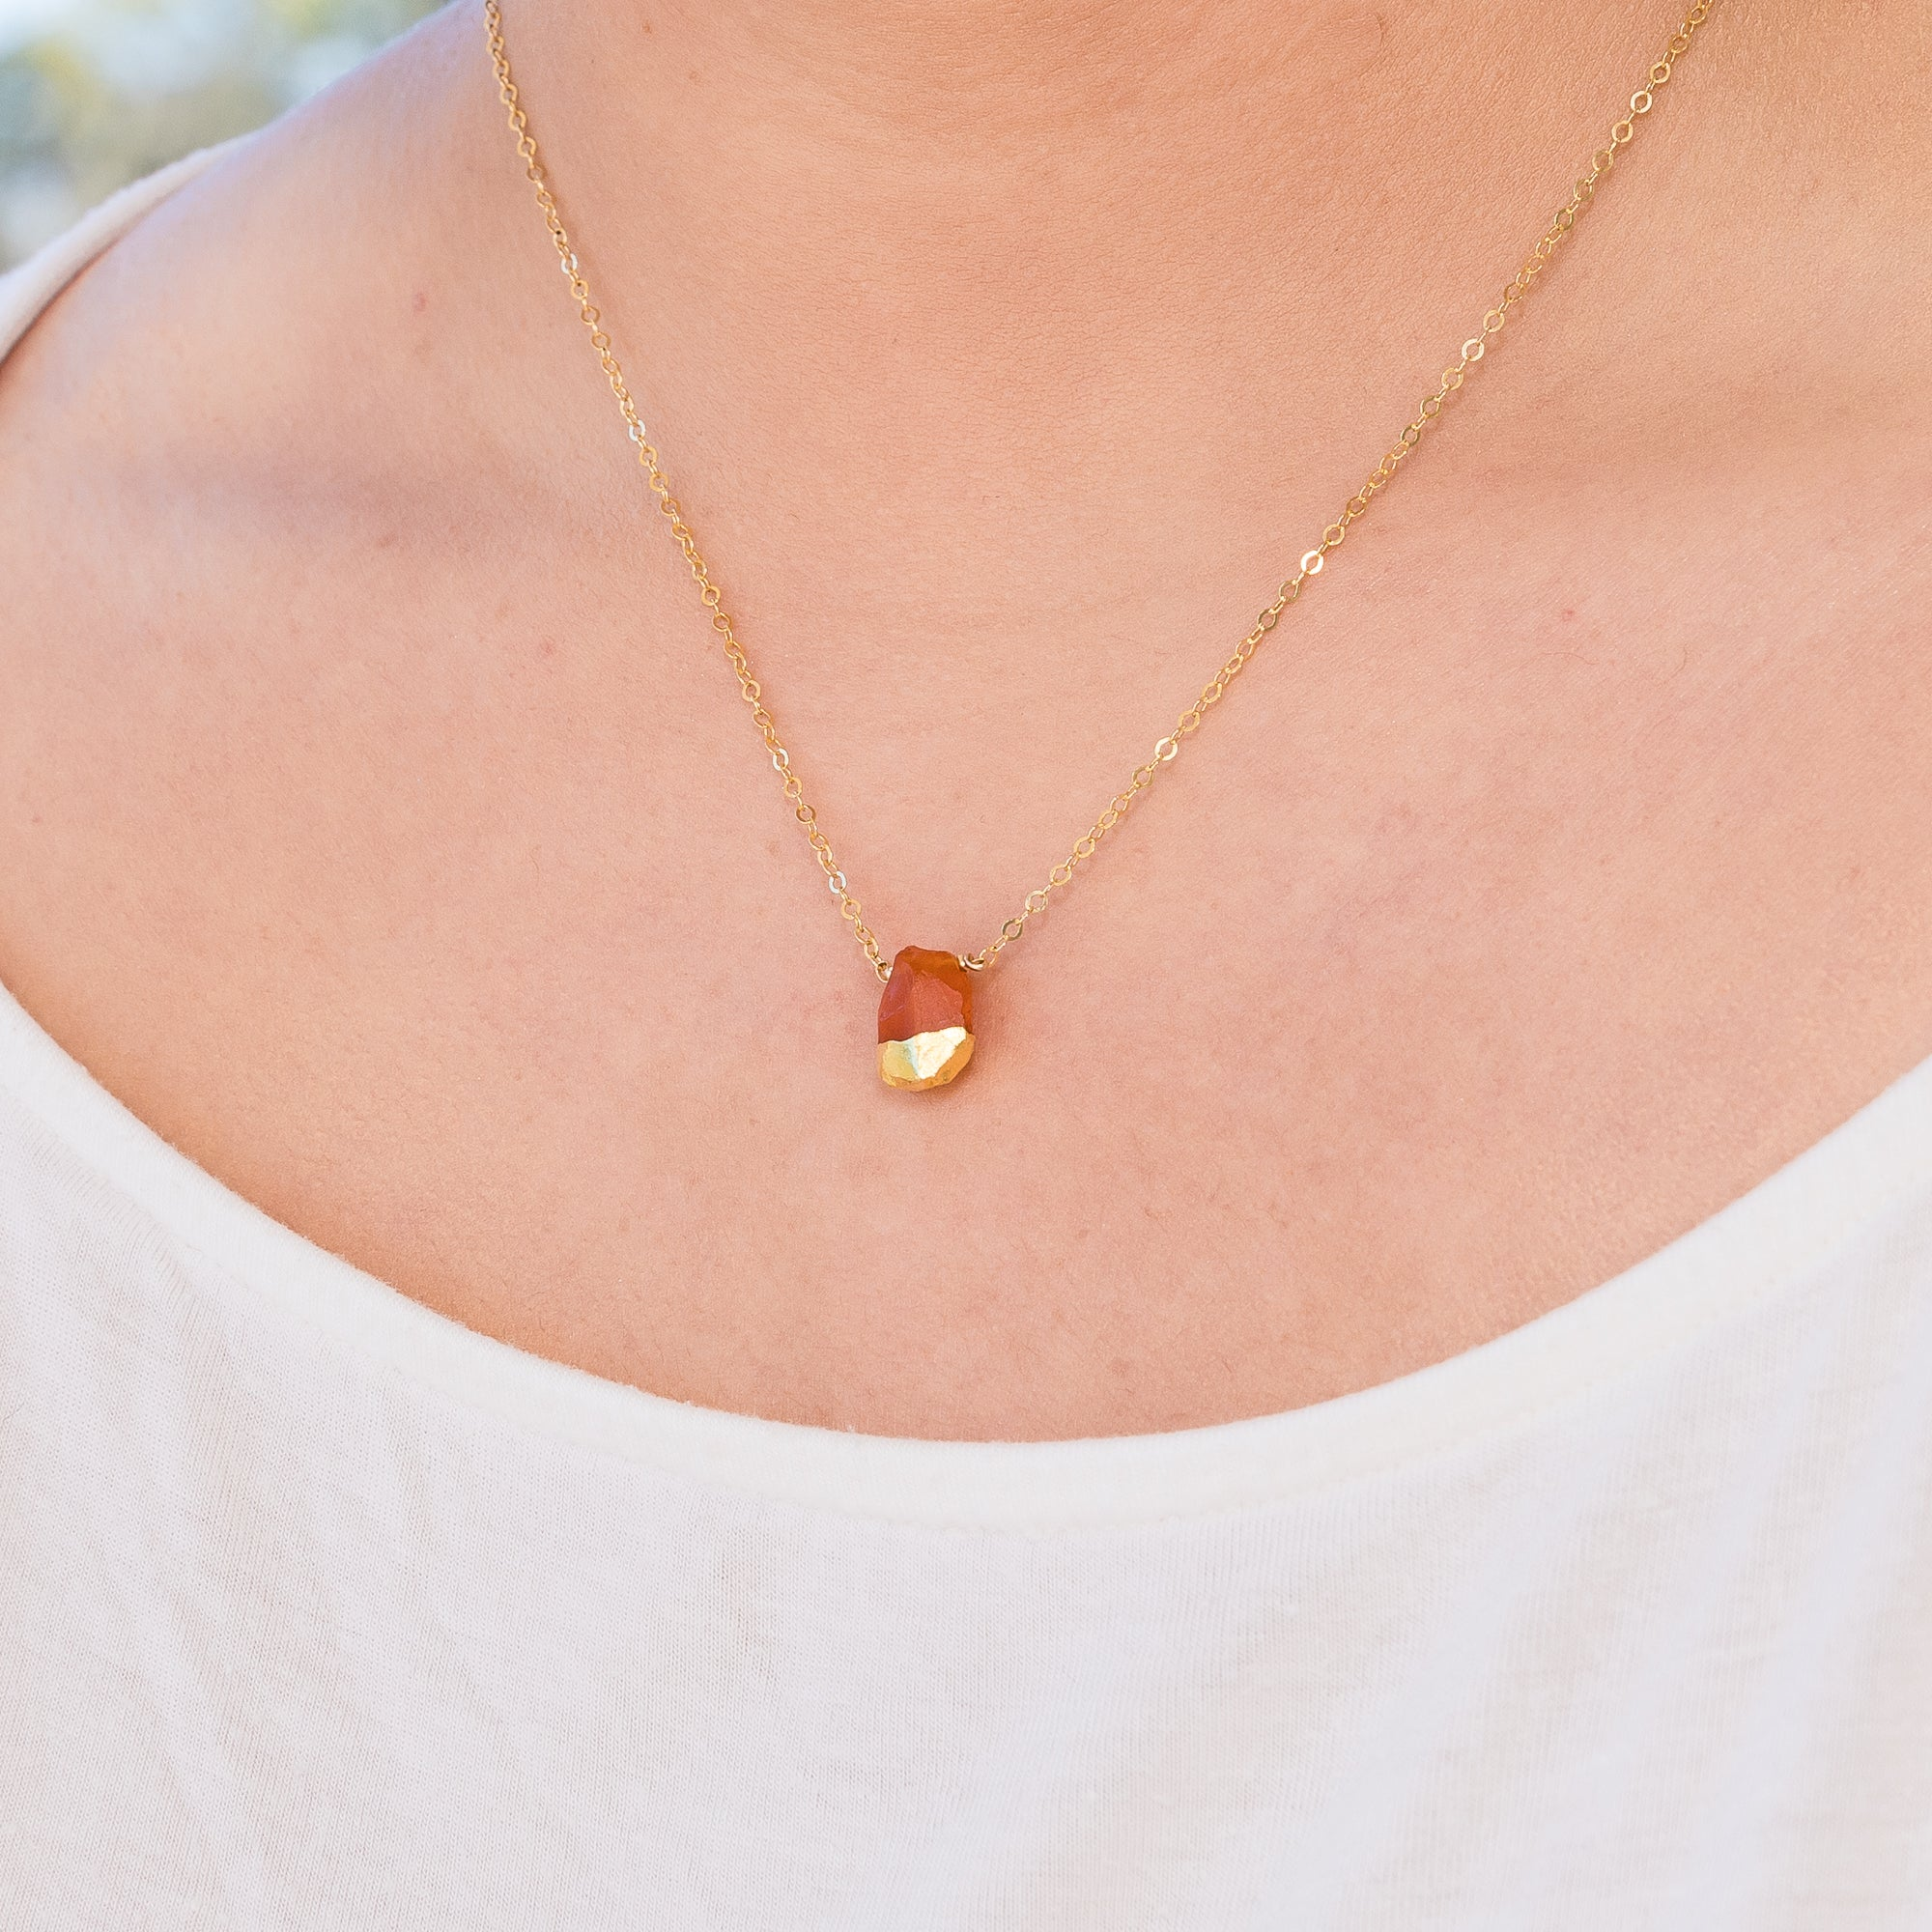 24 K Gold Dipped Raw Carnelian Gemstone Necklace